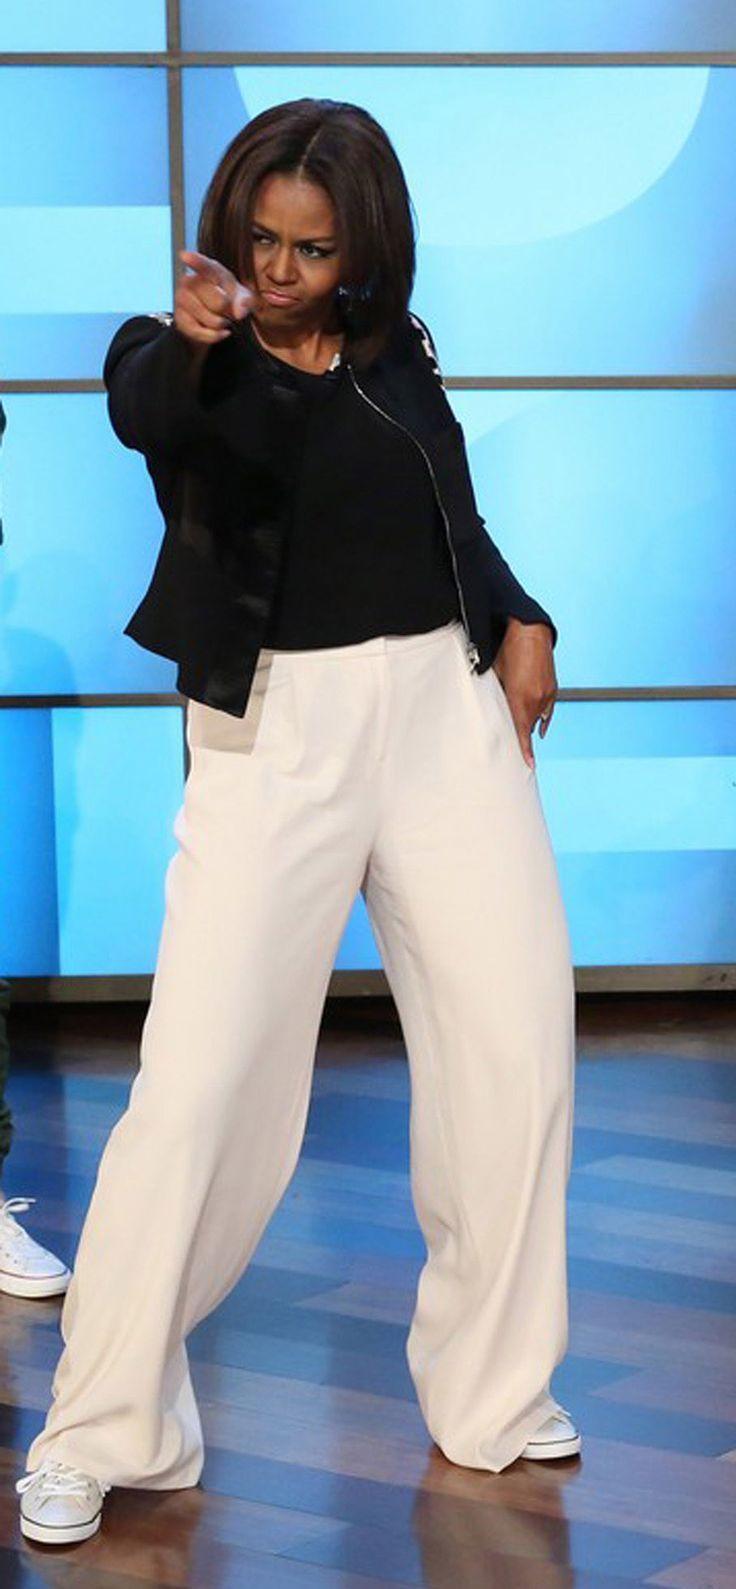 Michelle Obama funkin' to Uptown Funk on The Ellen Show http://www.heatworld.com/2015/03/check-out-michelle-obama-dancing-to-uptown-funk-with-ellen-degeneres#.VQMFZ_x4pch